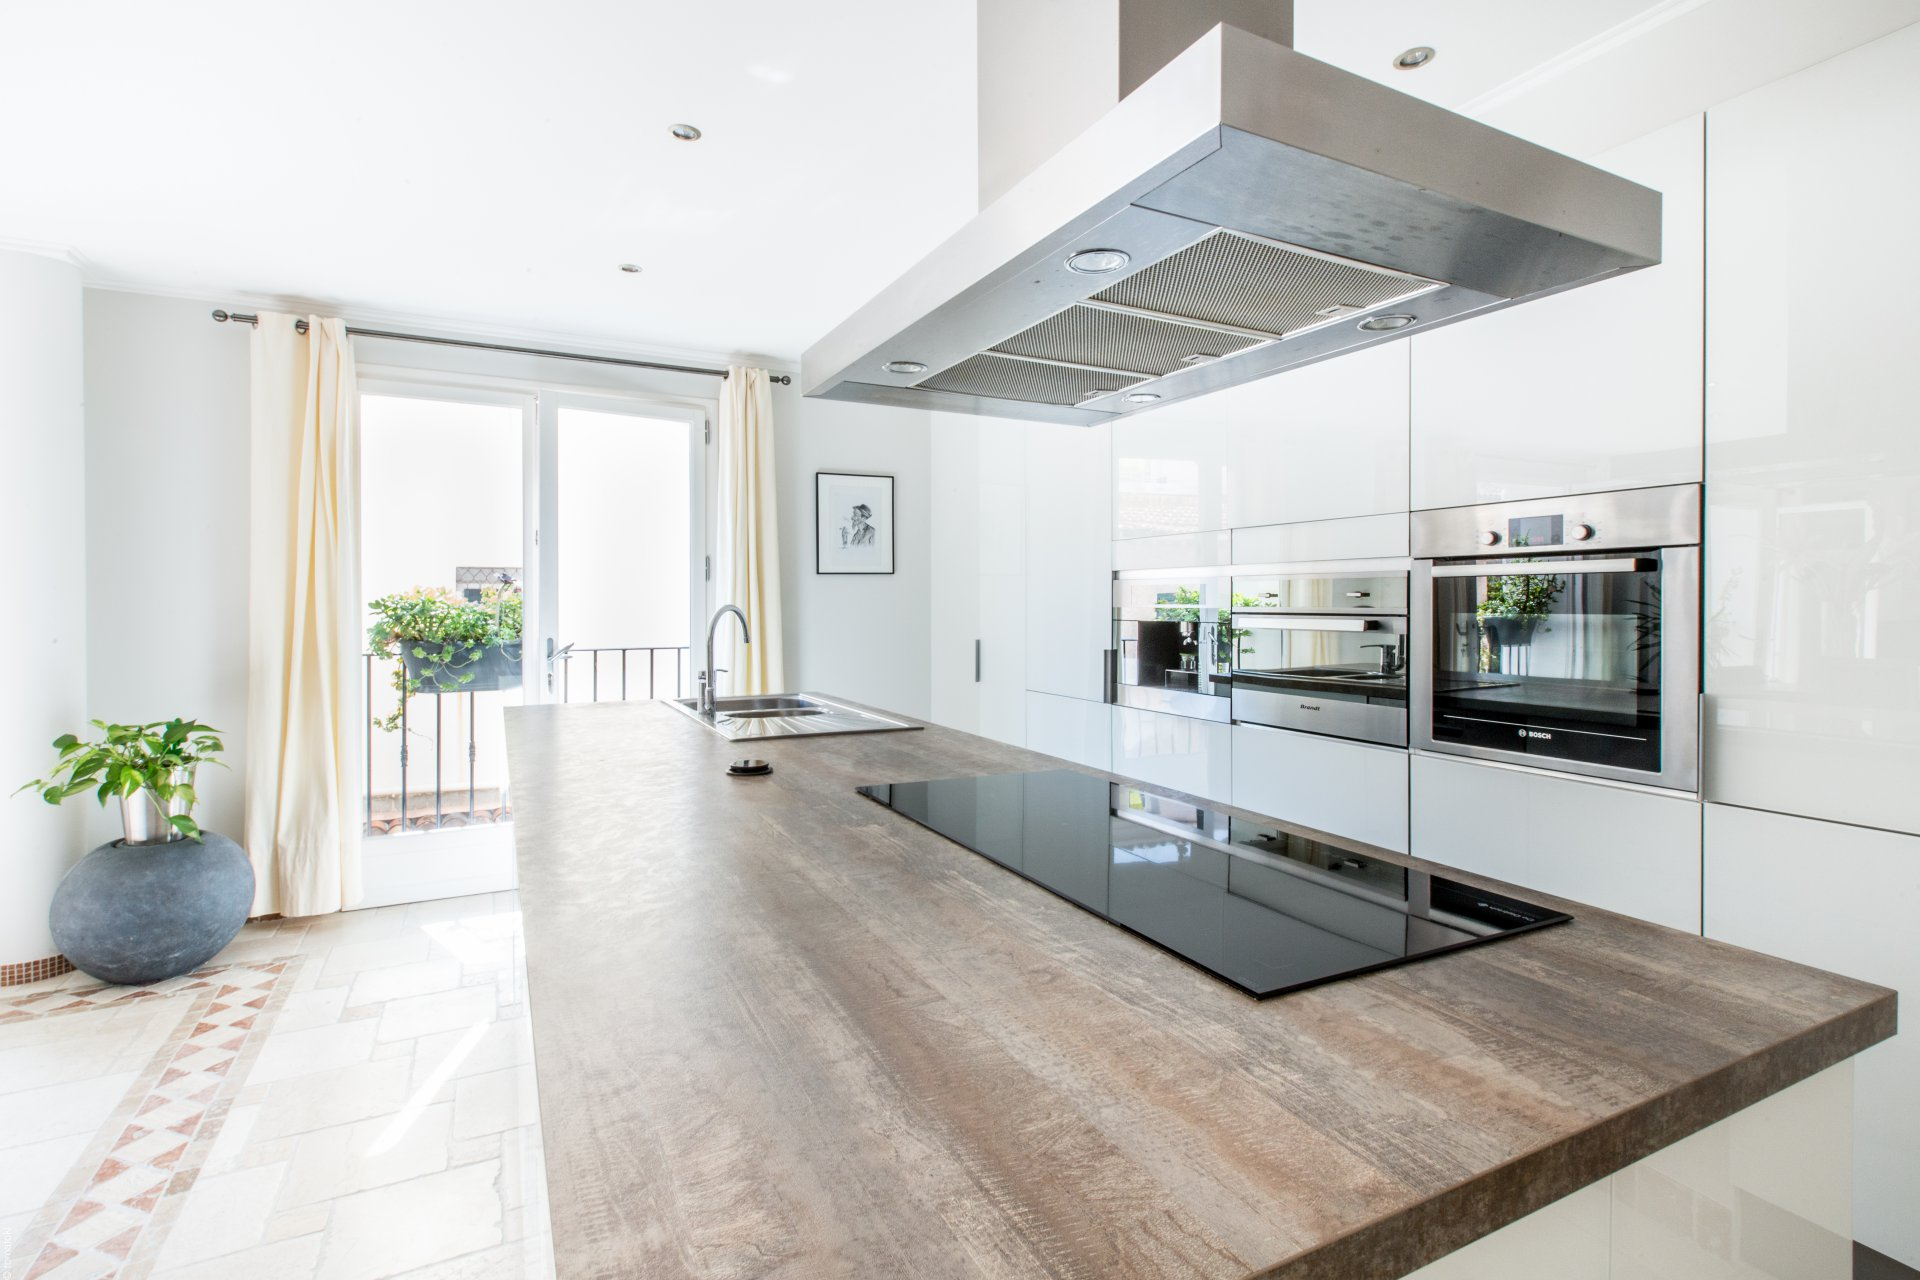 Stainless steel, natural light, kitchen island